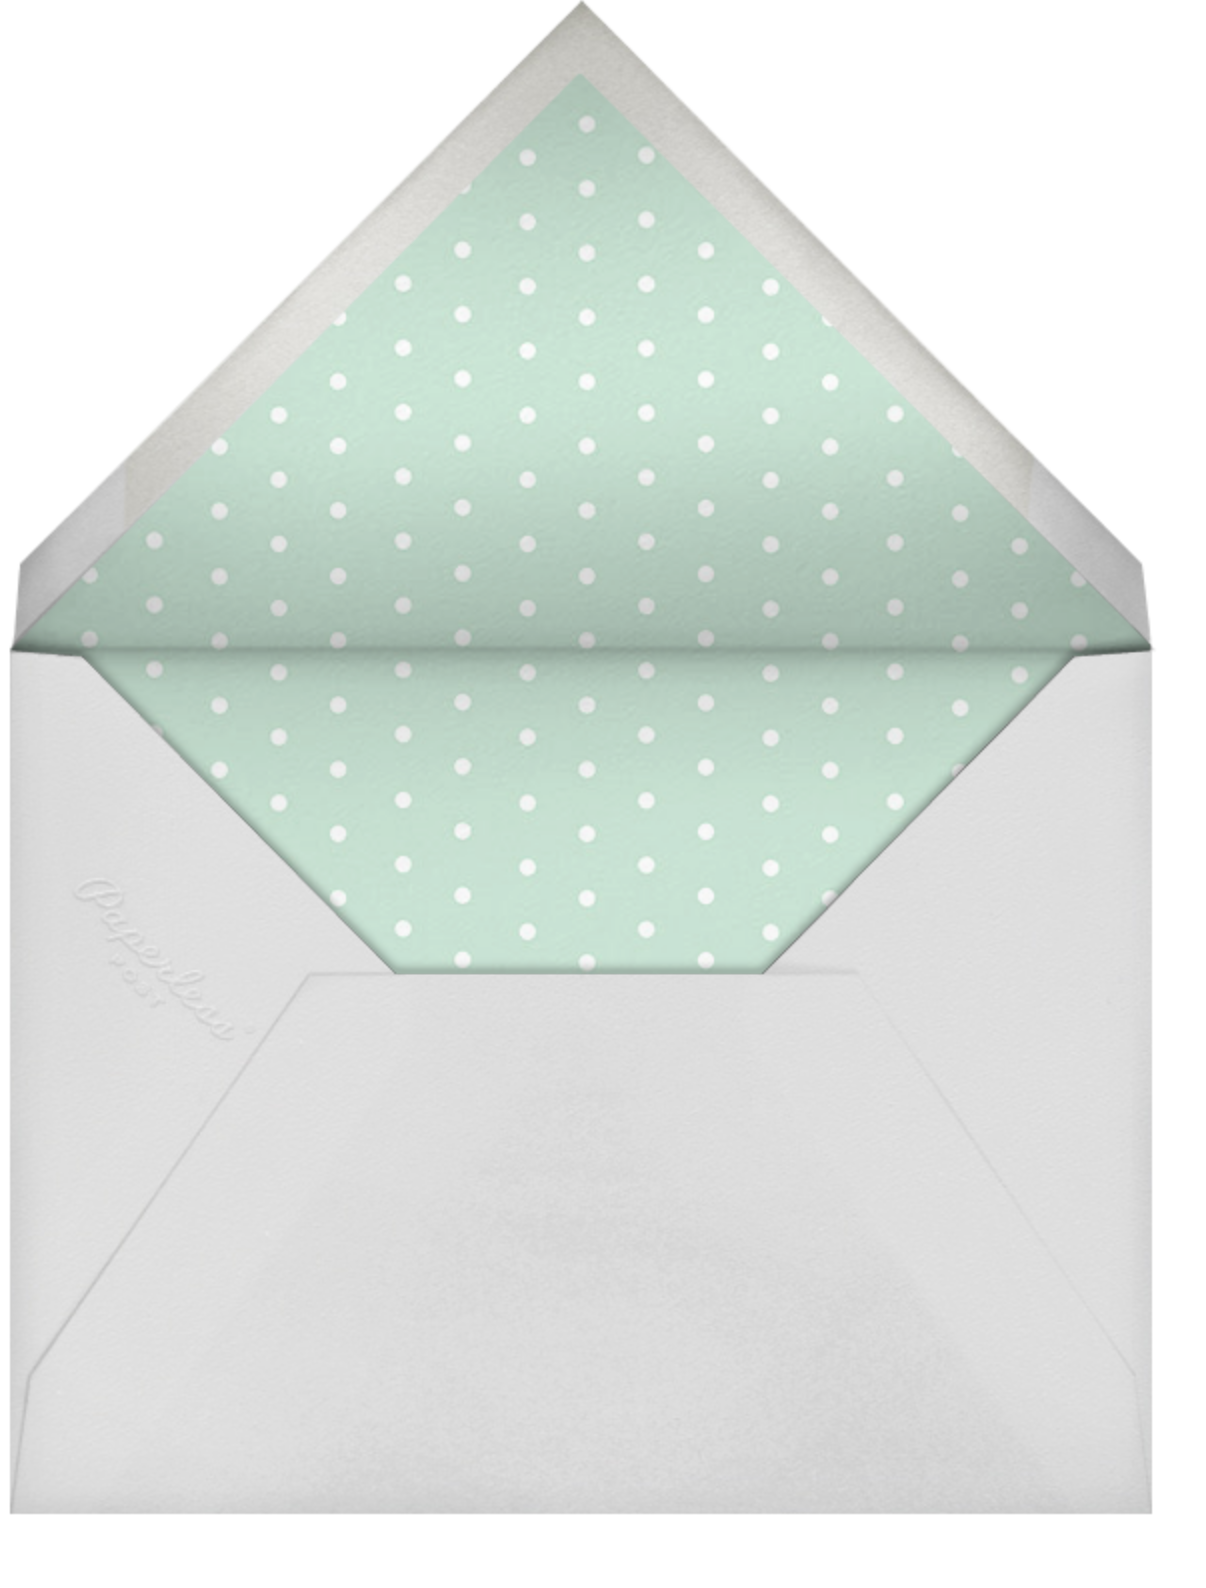 Bunny, Bear, and Baby (Photo) - Mint - Rifle Paper Co. - Baby shower - envelope back